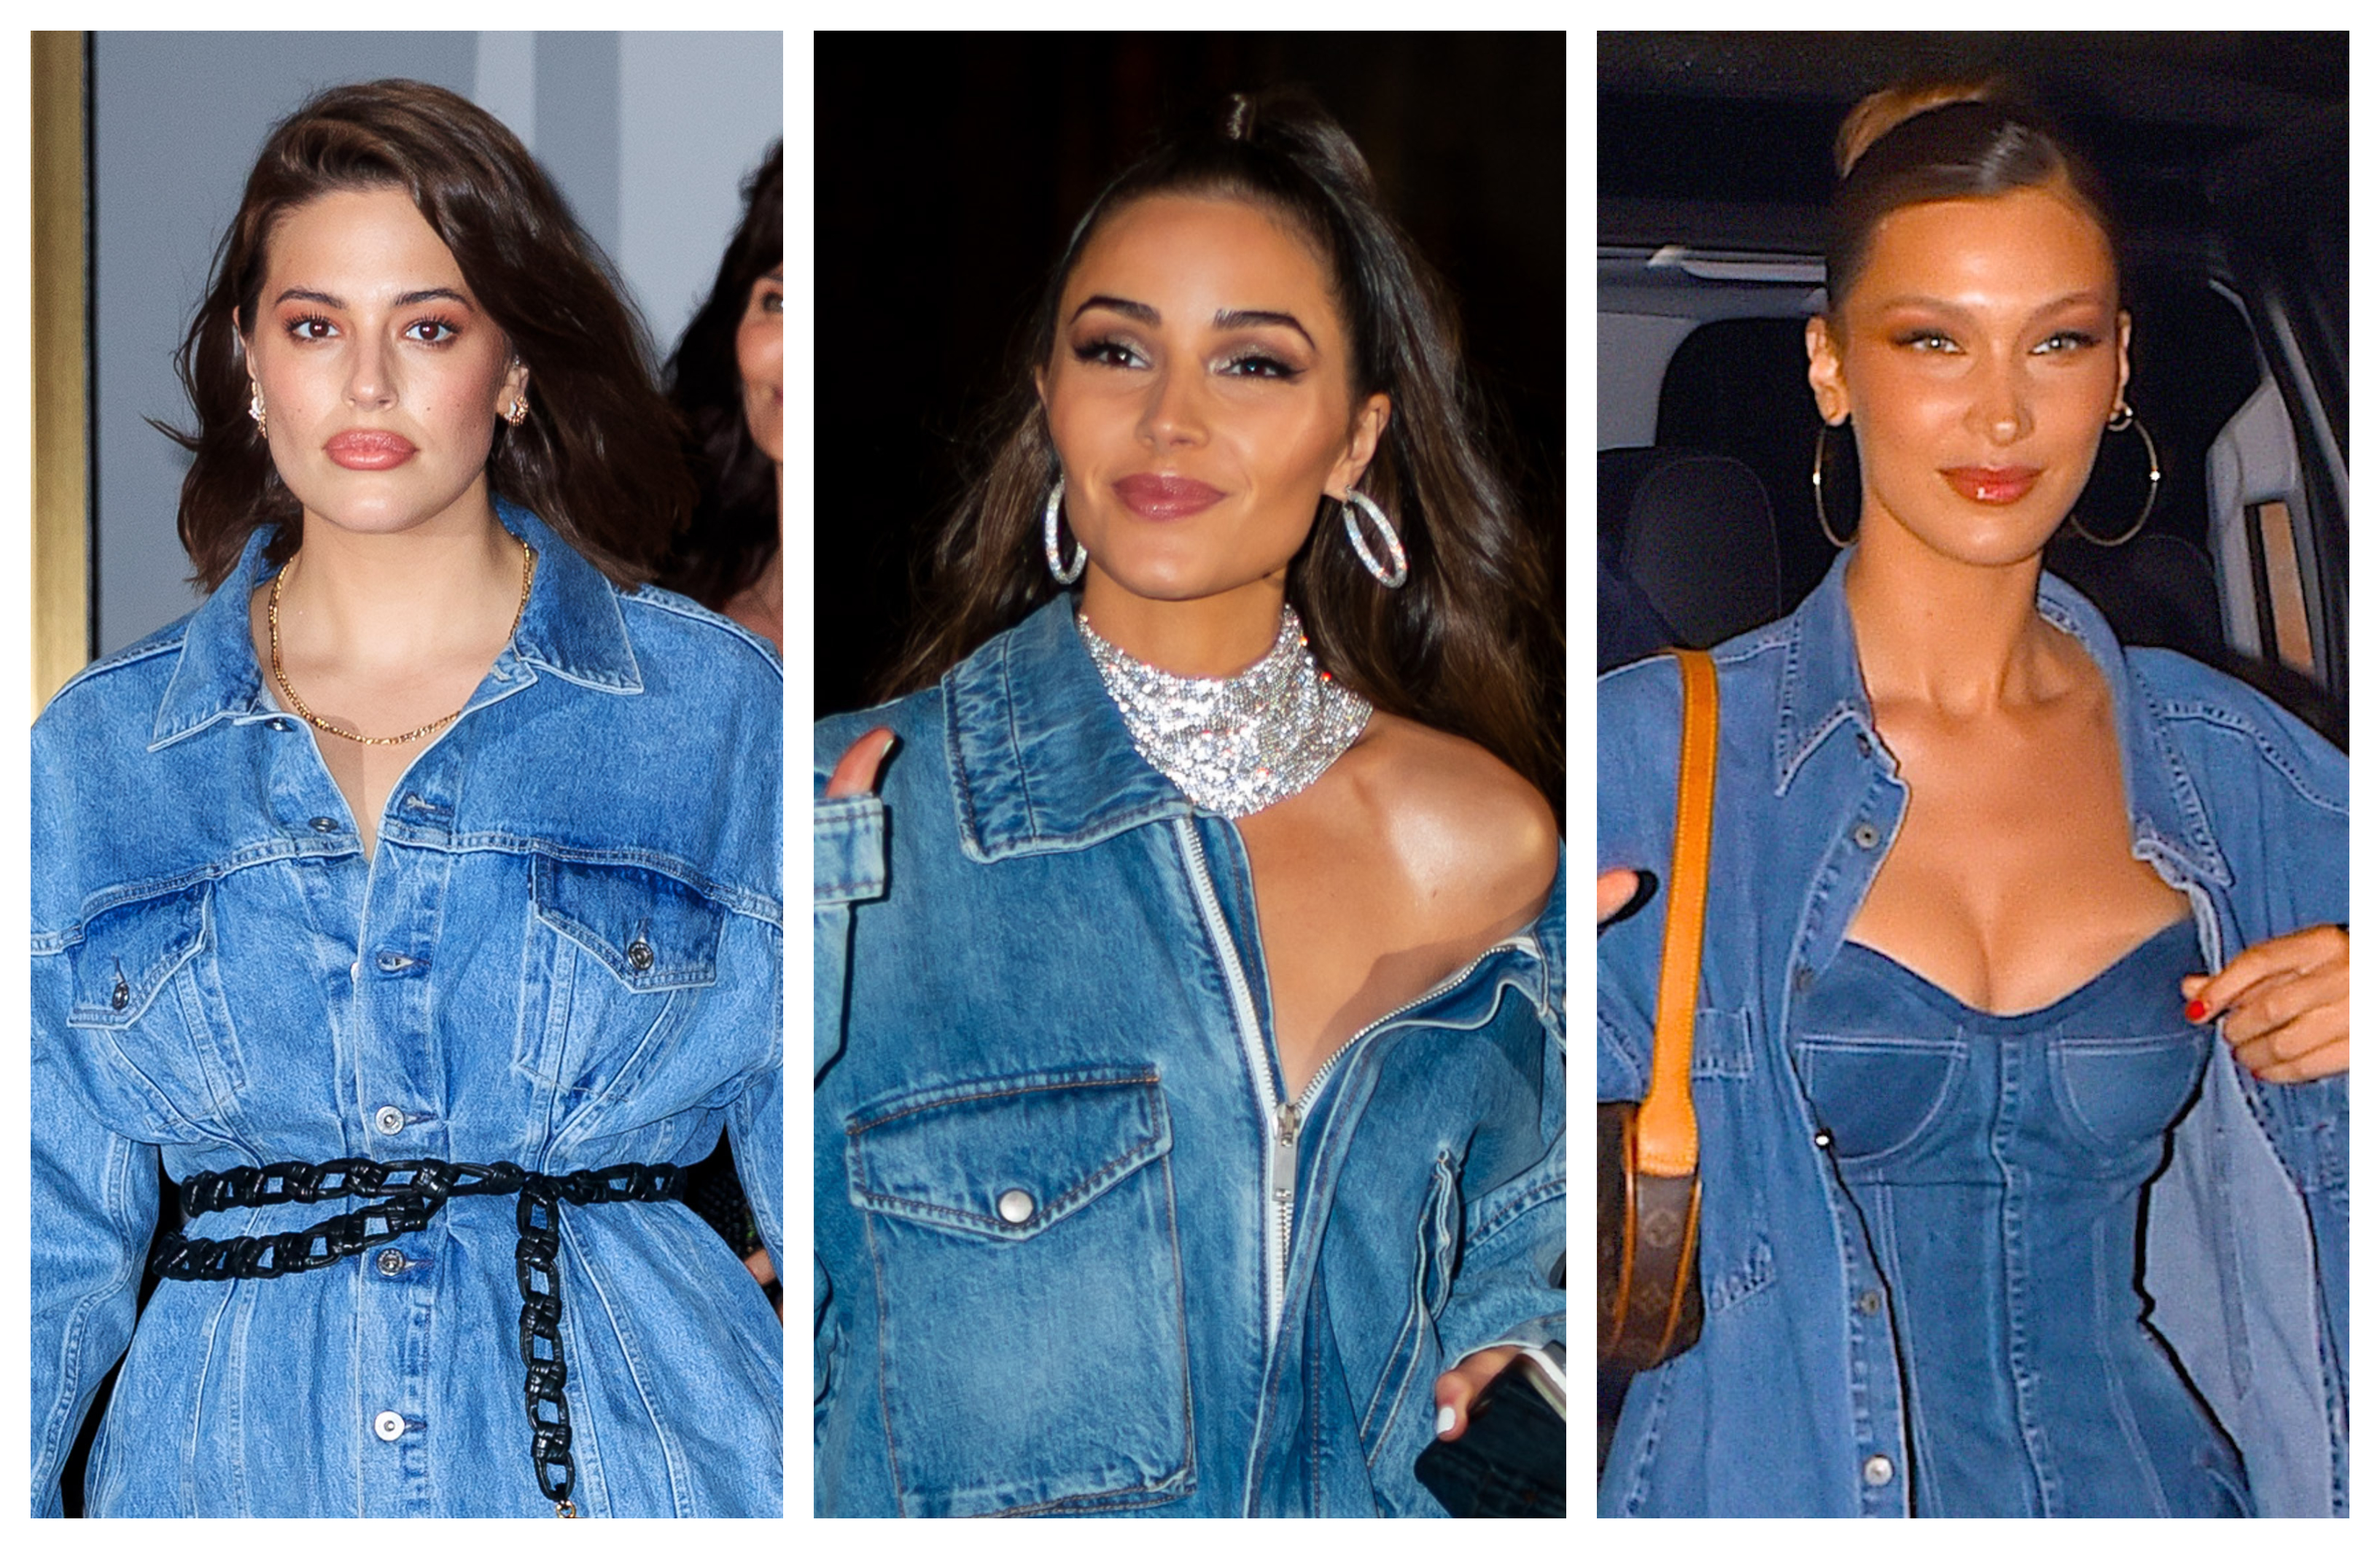 ea82e76cc02 Gigi Hadid s Denim-Themed Birthday Party  See What the Stars Wore!